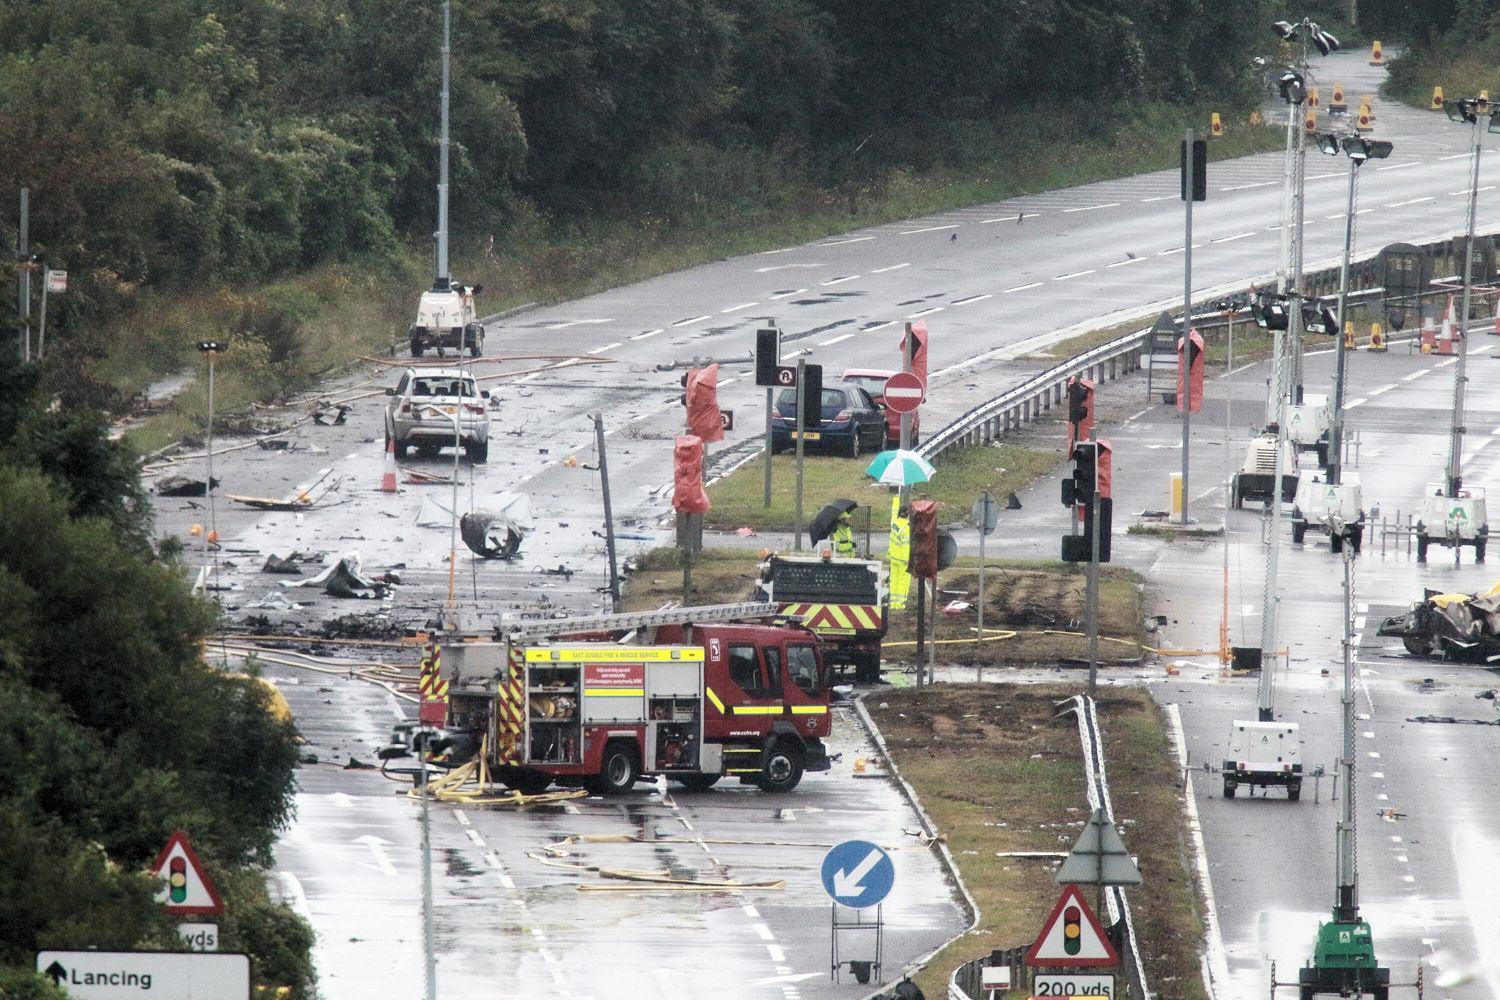 UNILAD Eddie Mitchell7 Dramatic New Details Of Shoreham Airshow Crash Have Been Revealed